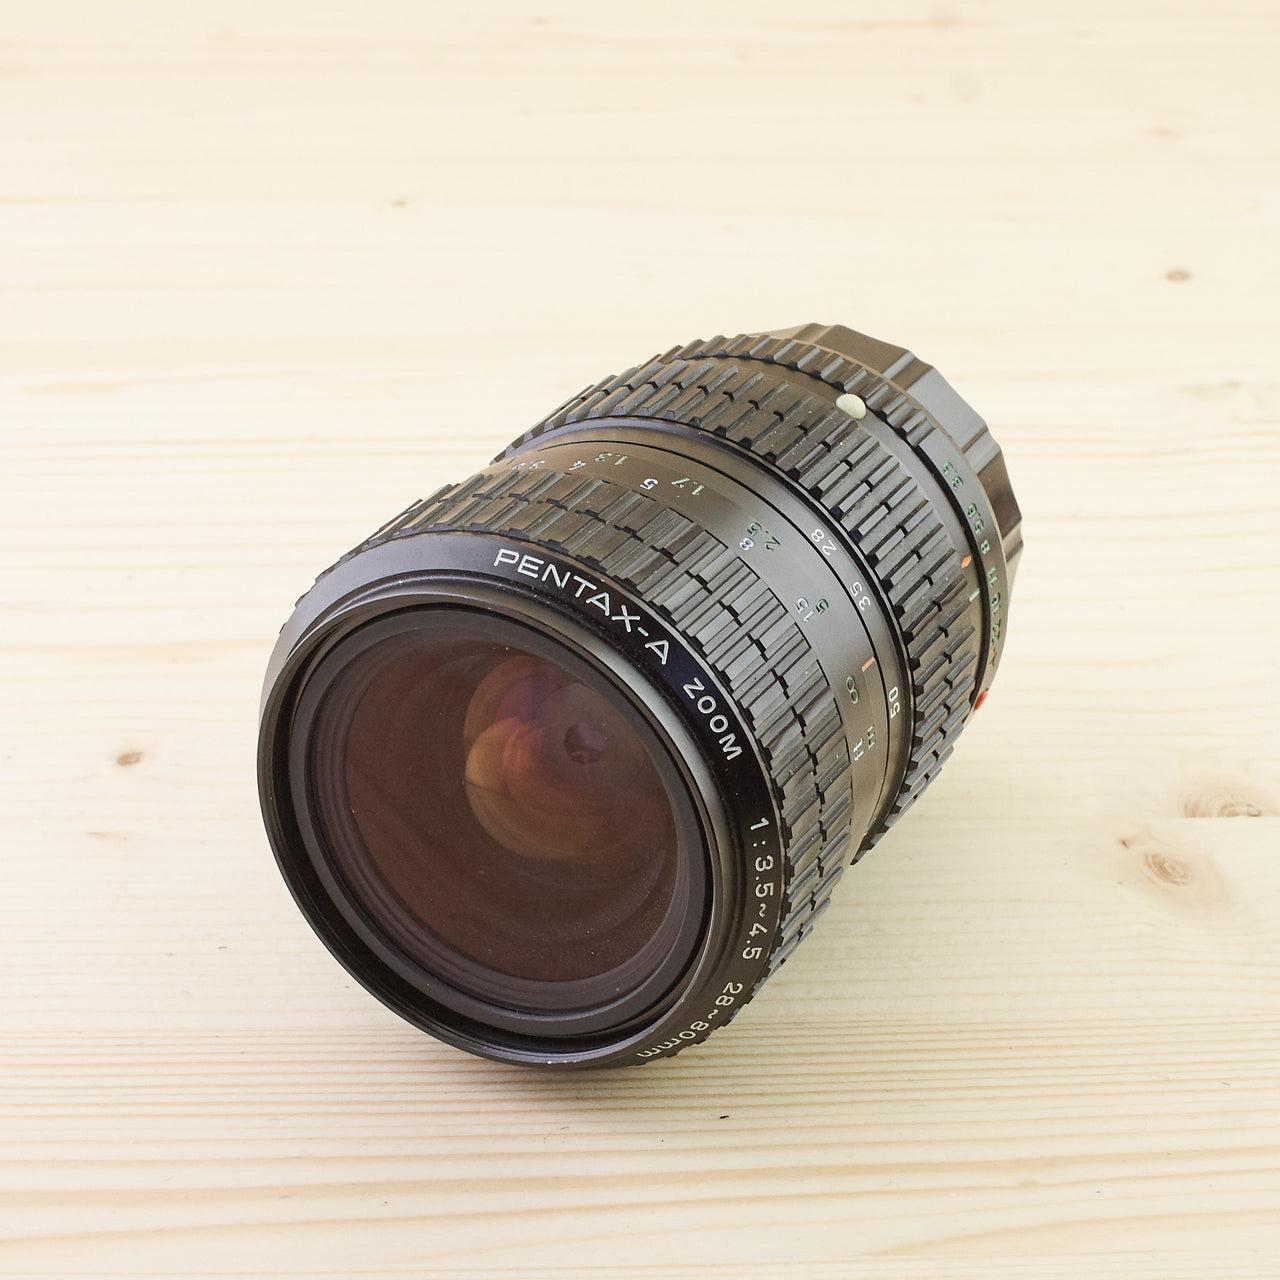 Pentax-A 28-80mm f/3.5-4.5 Exc - West Yorkshire Cameras